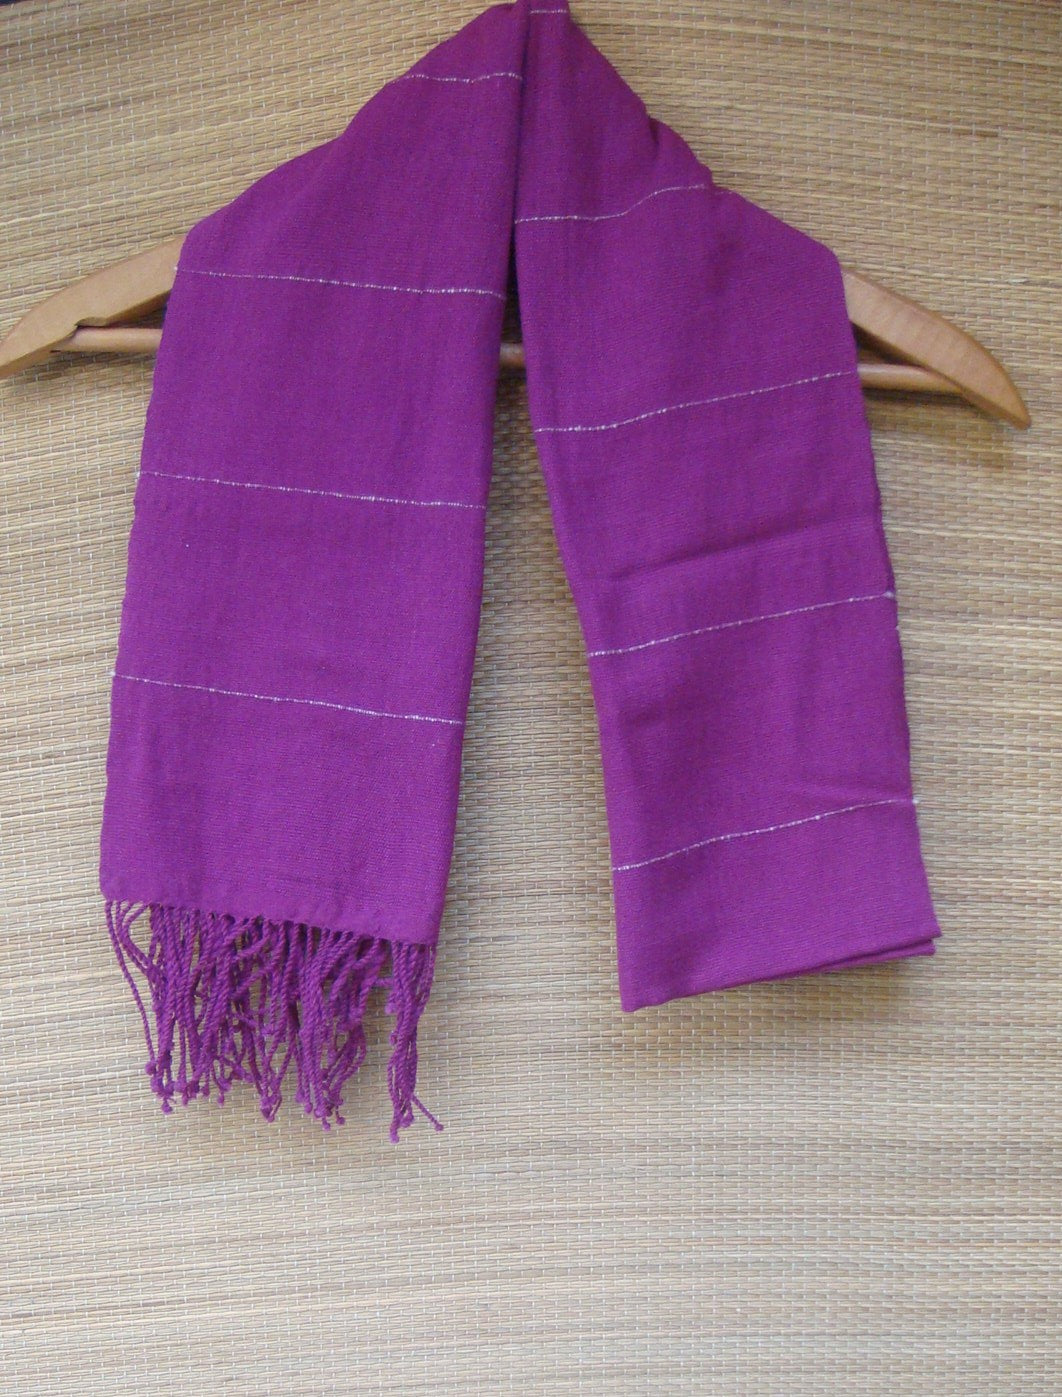 Rebozo Shawl Handwoven Cotton from Mexico